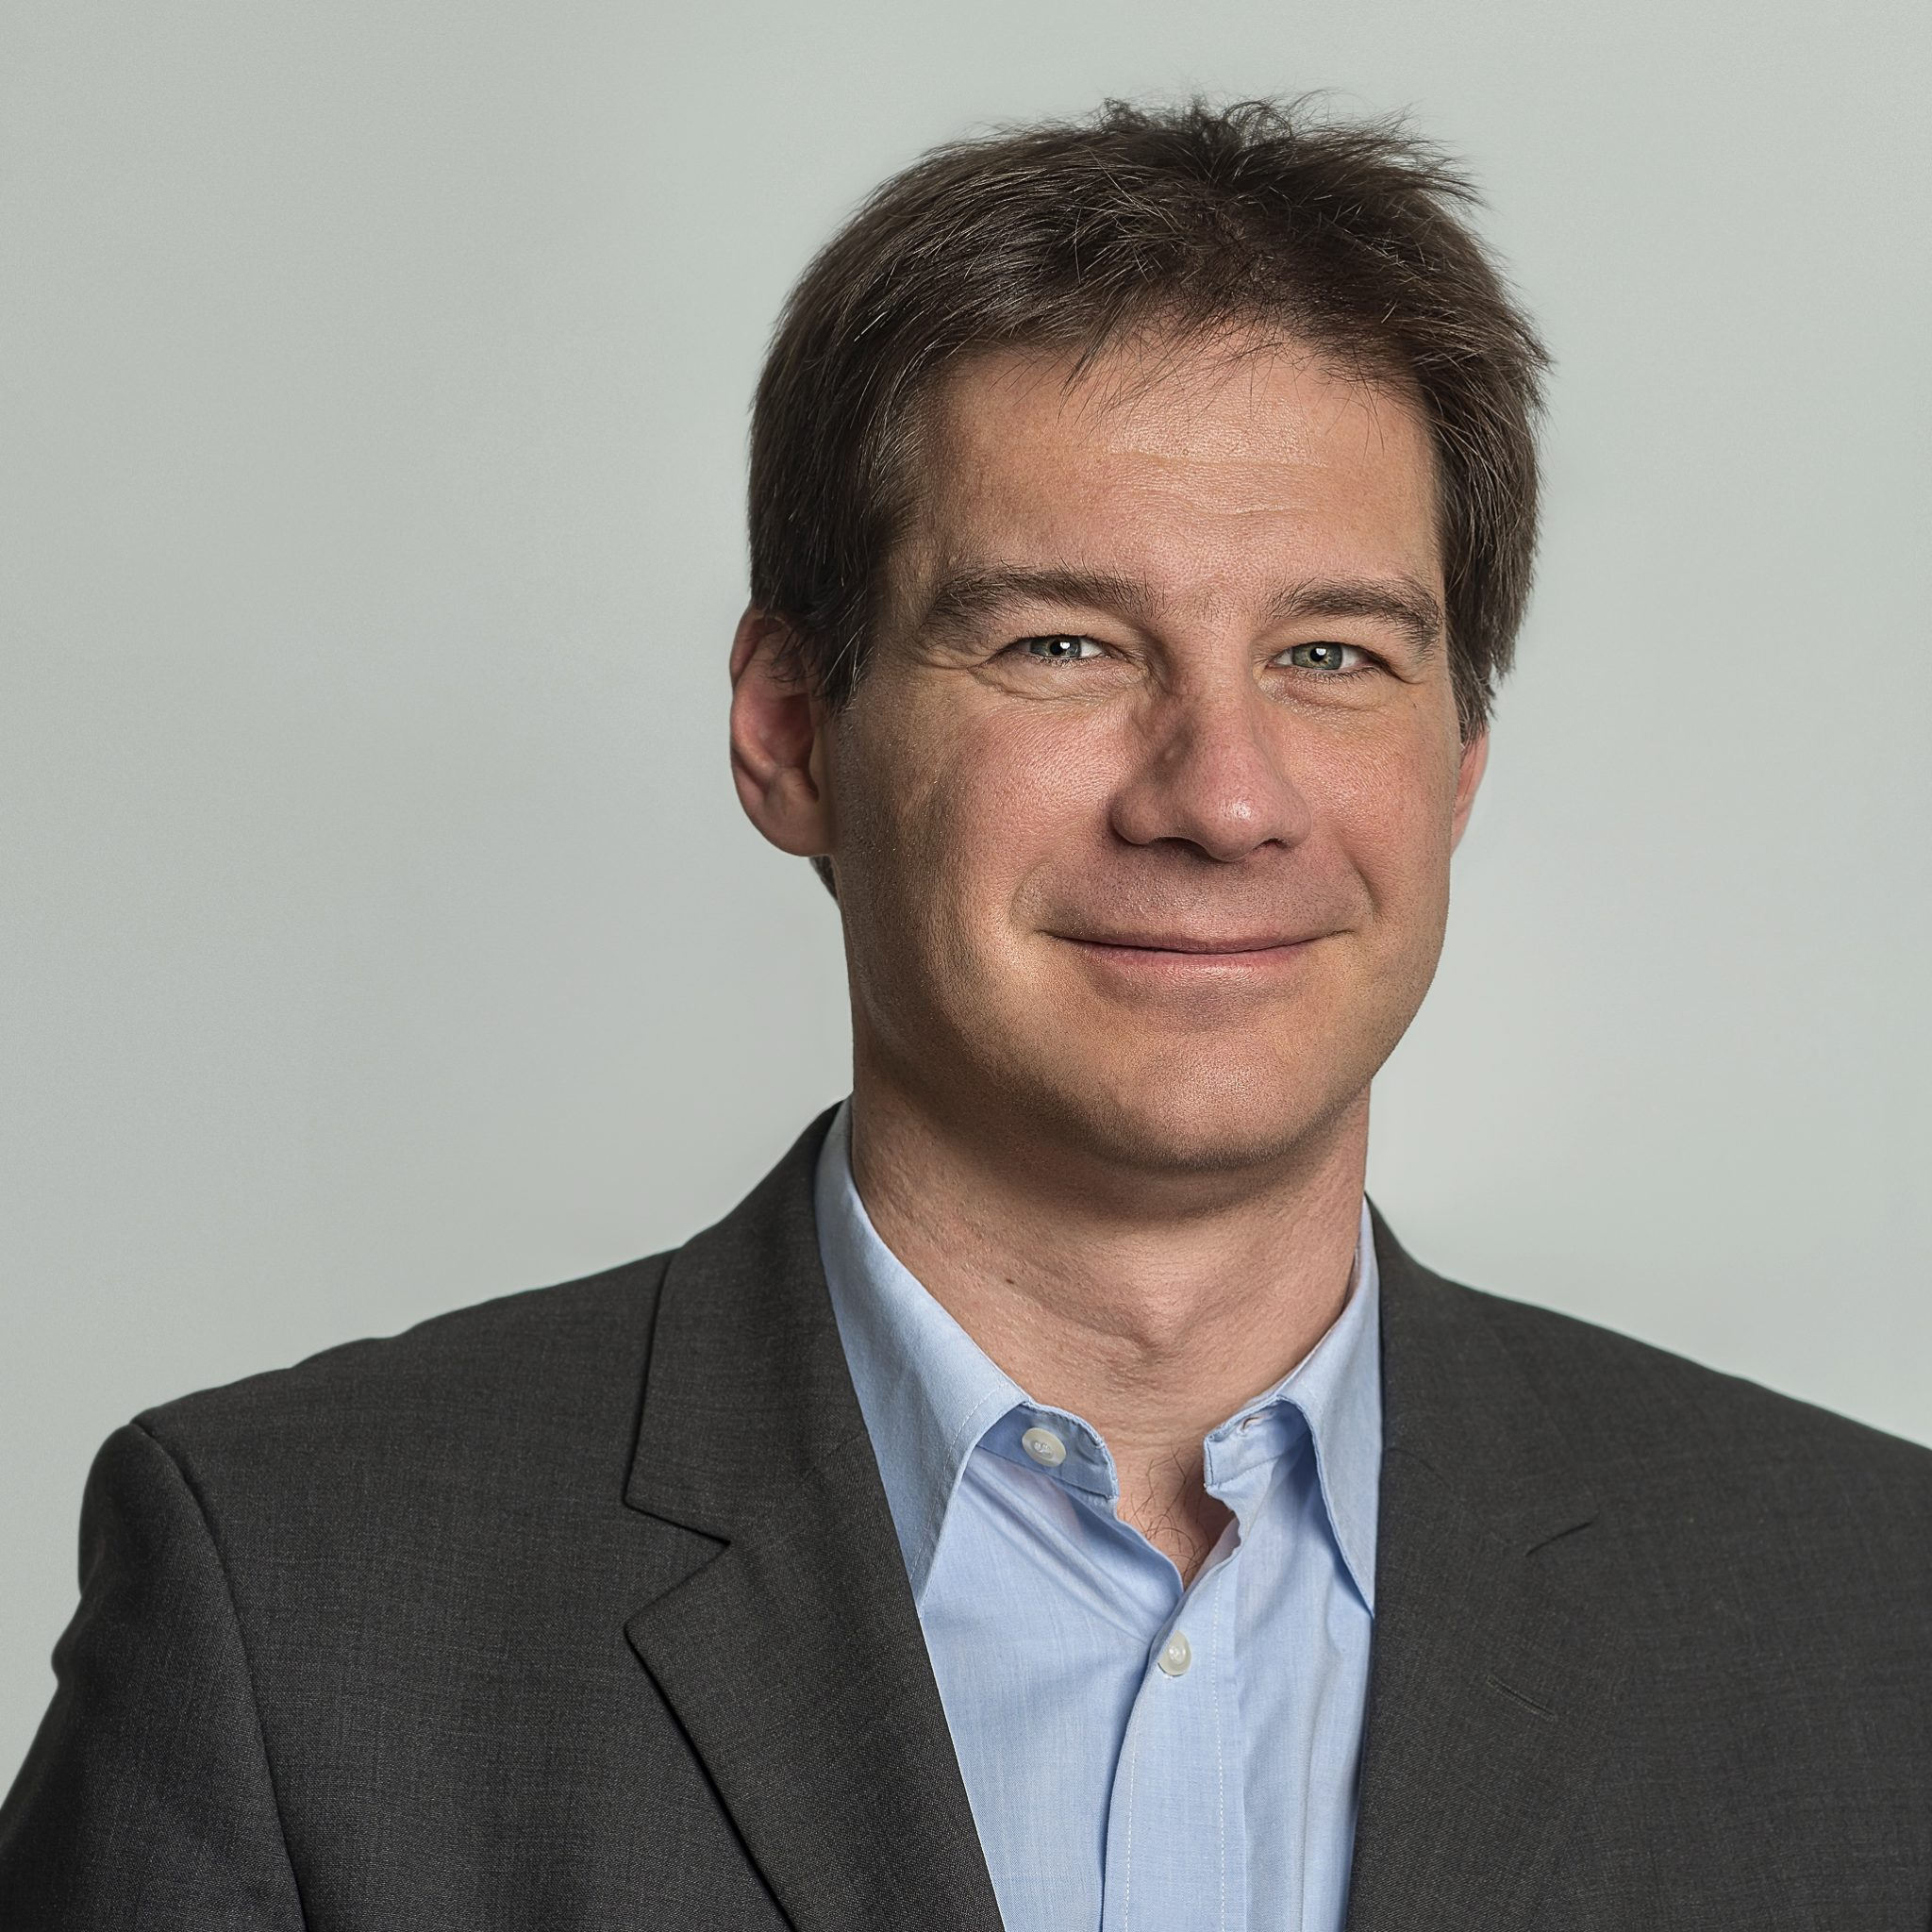 Thilo Rockmann, founder and chairman of LzLabs